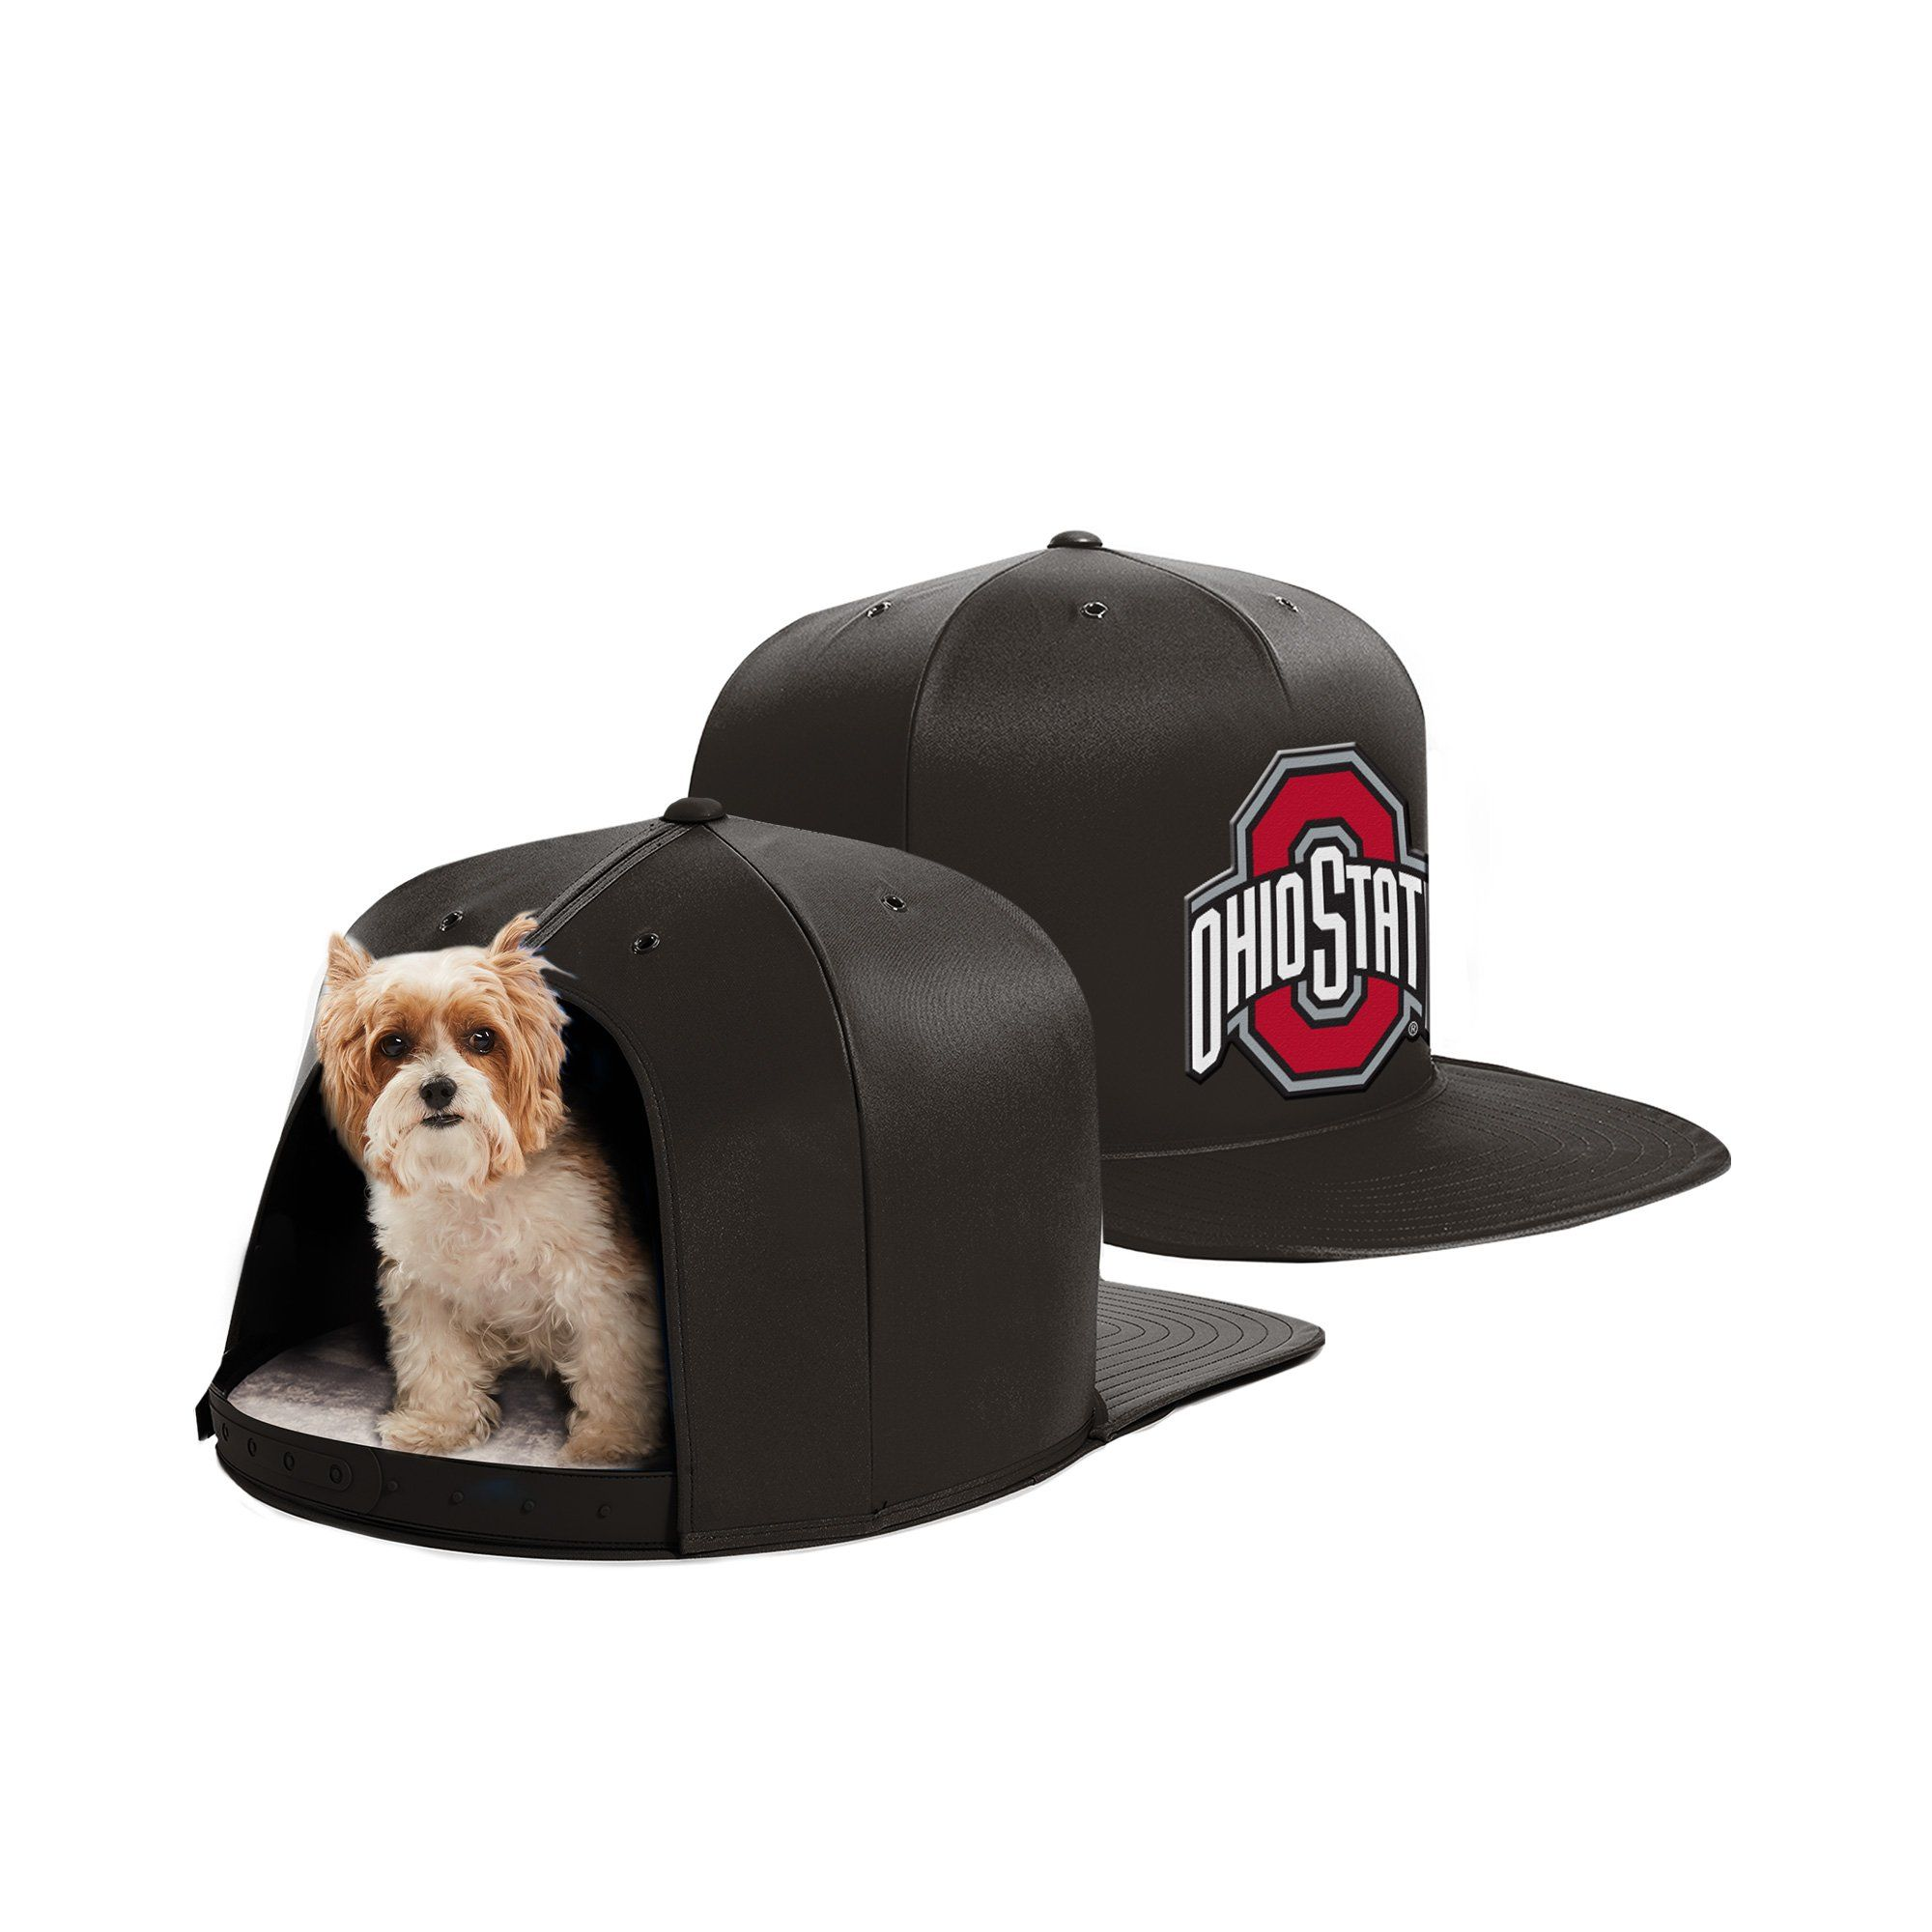 Ohio State University Nap Cap Dog Bed Small pets, Pet